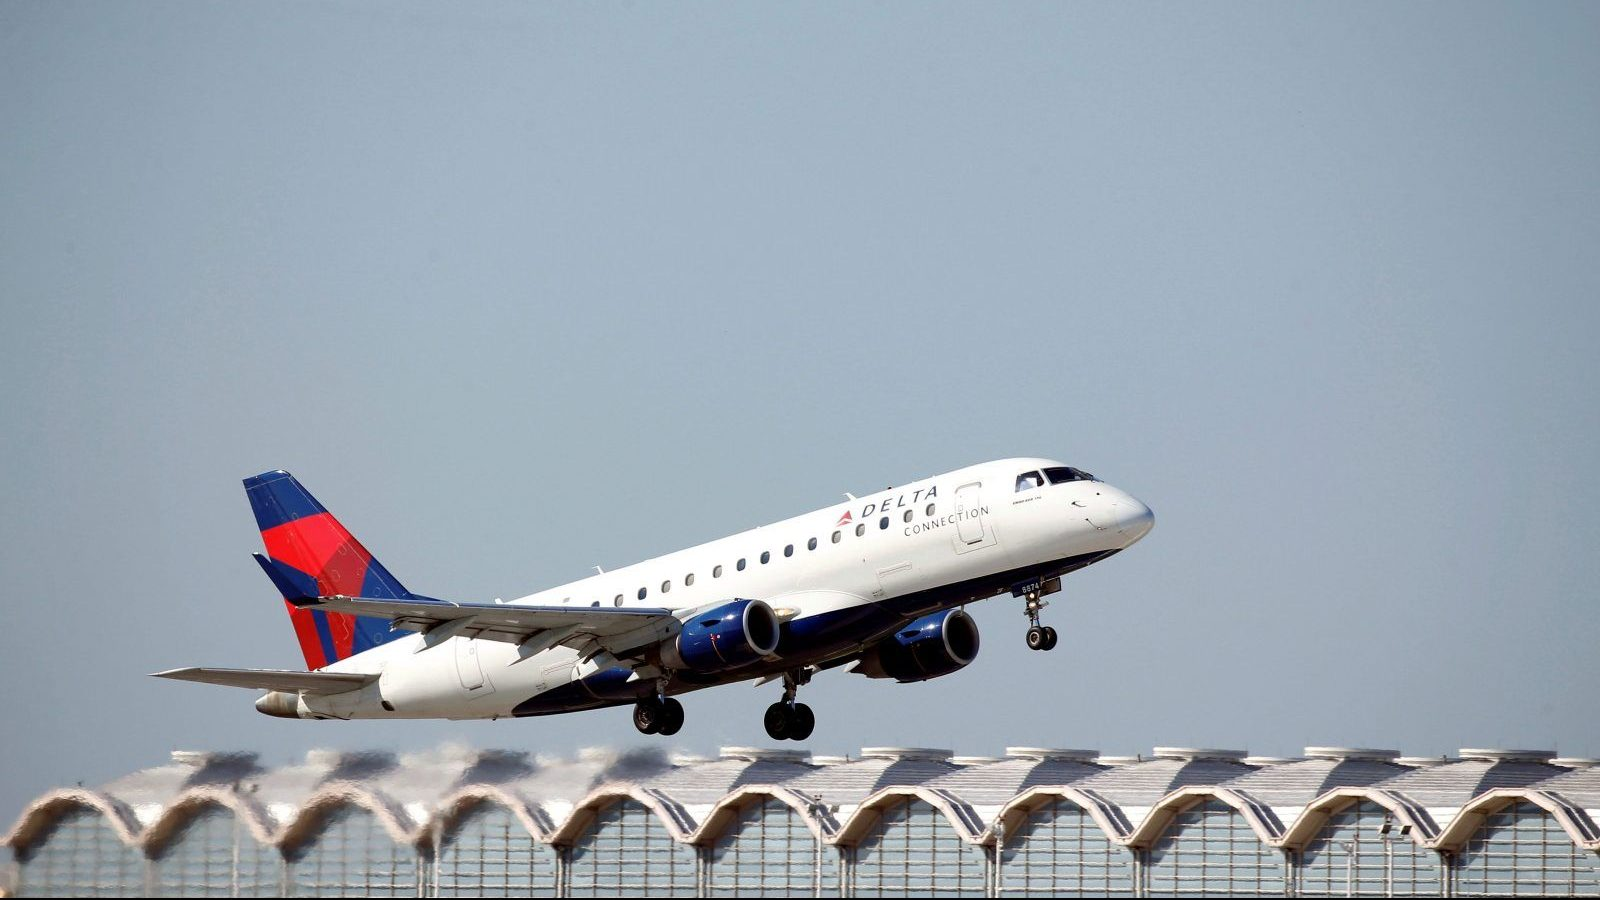 A Delta Connection Embraer ERJ-170 jet takes off from Washington National Airport in Washington, U.S., August 9, 2017.   REUTERS/Joshua Roberts - RC1CE52B0530